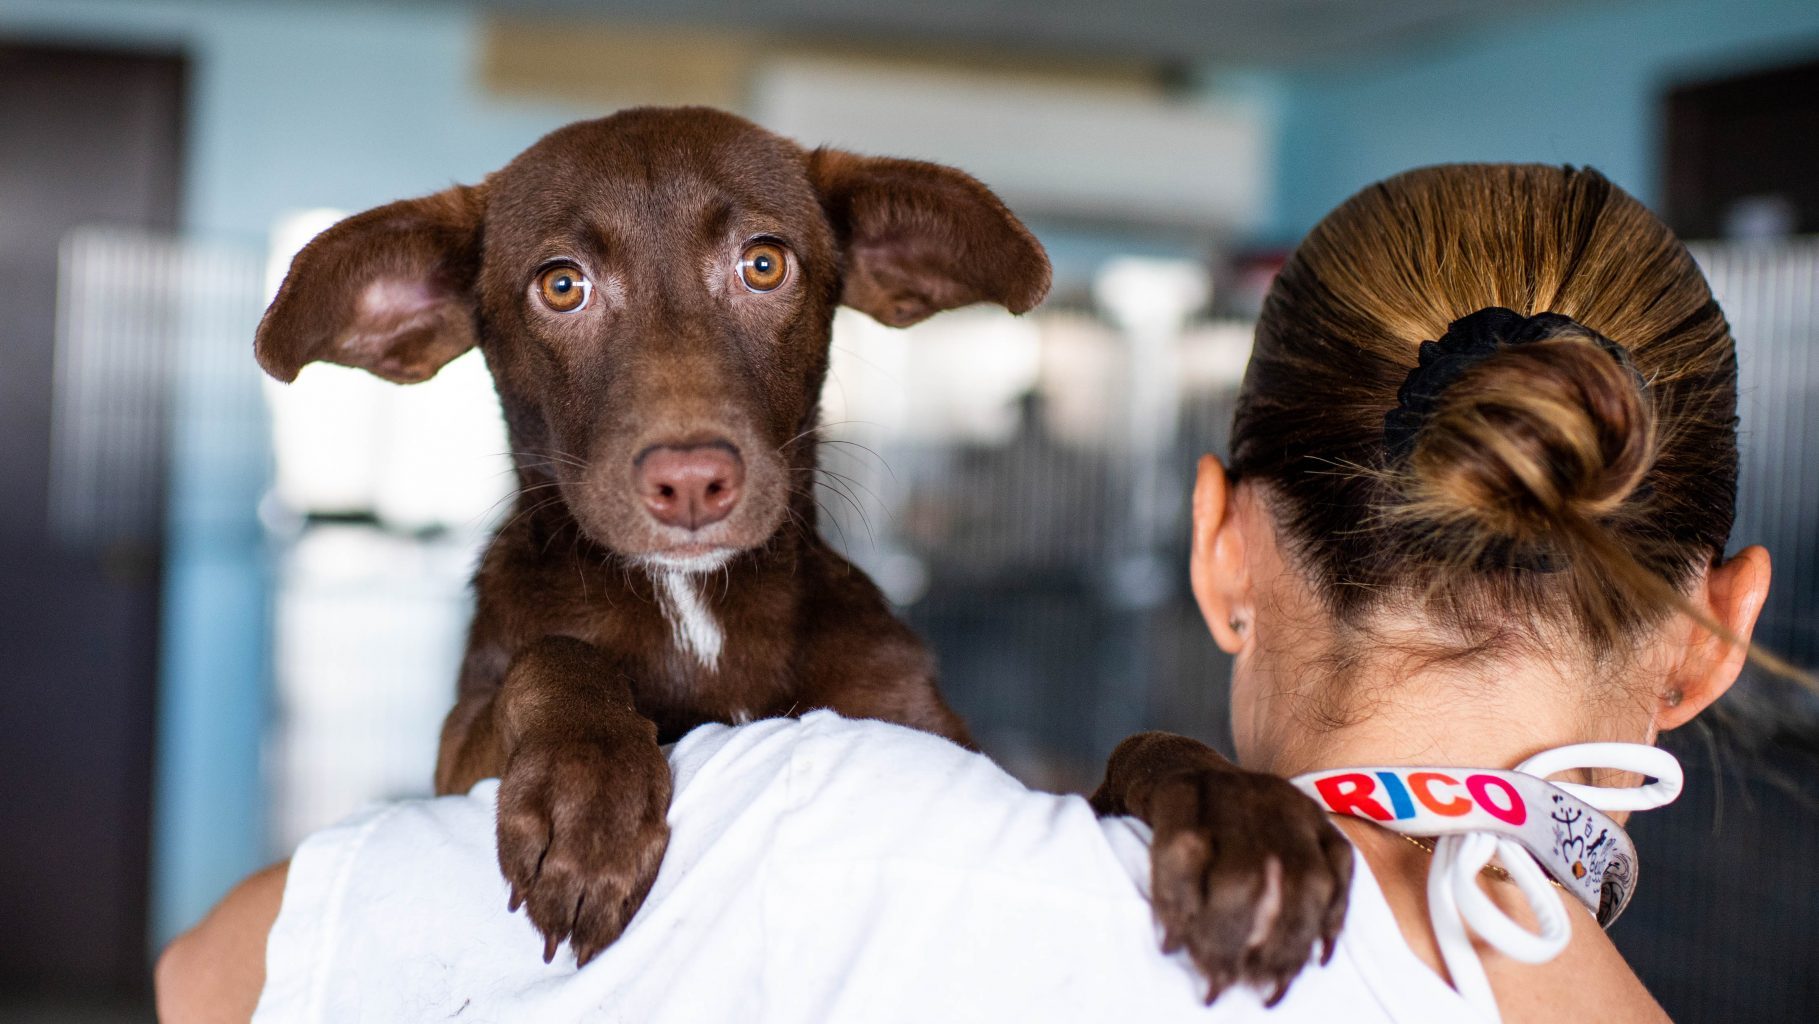 Image: Puppy looks over the shoulder of Chrissy Beckles, founder of the Sato Project